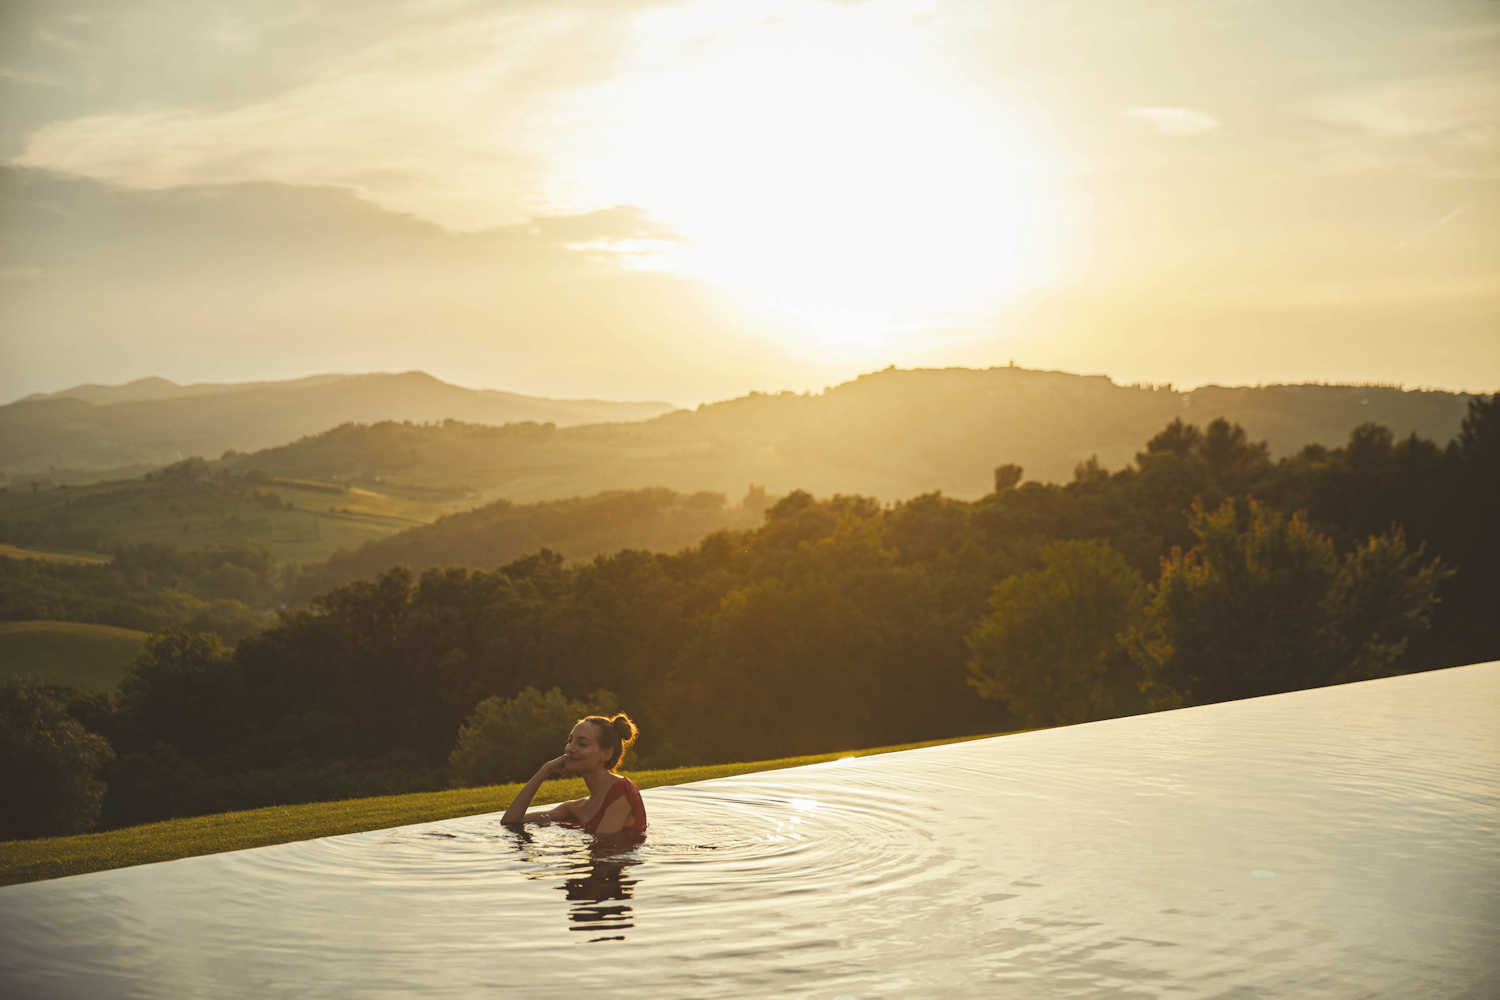 hotels with infintiy pools, belmond castello di casole